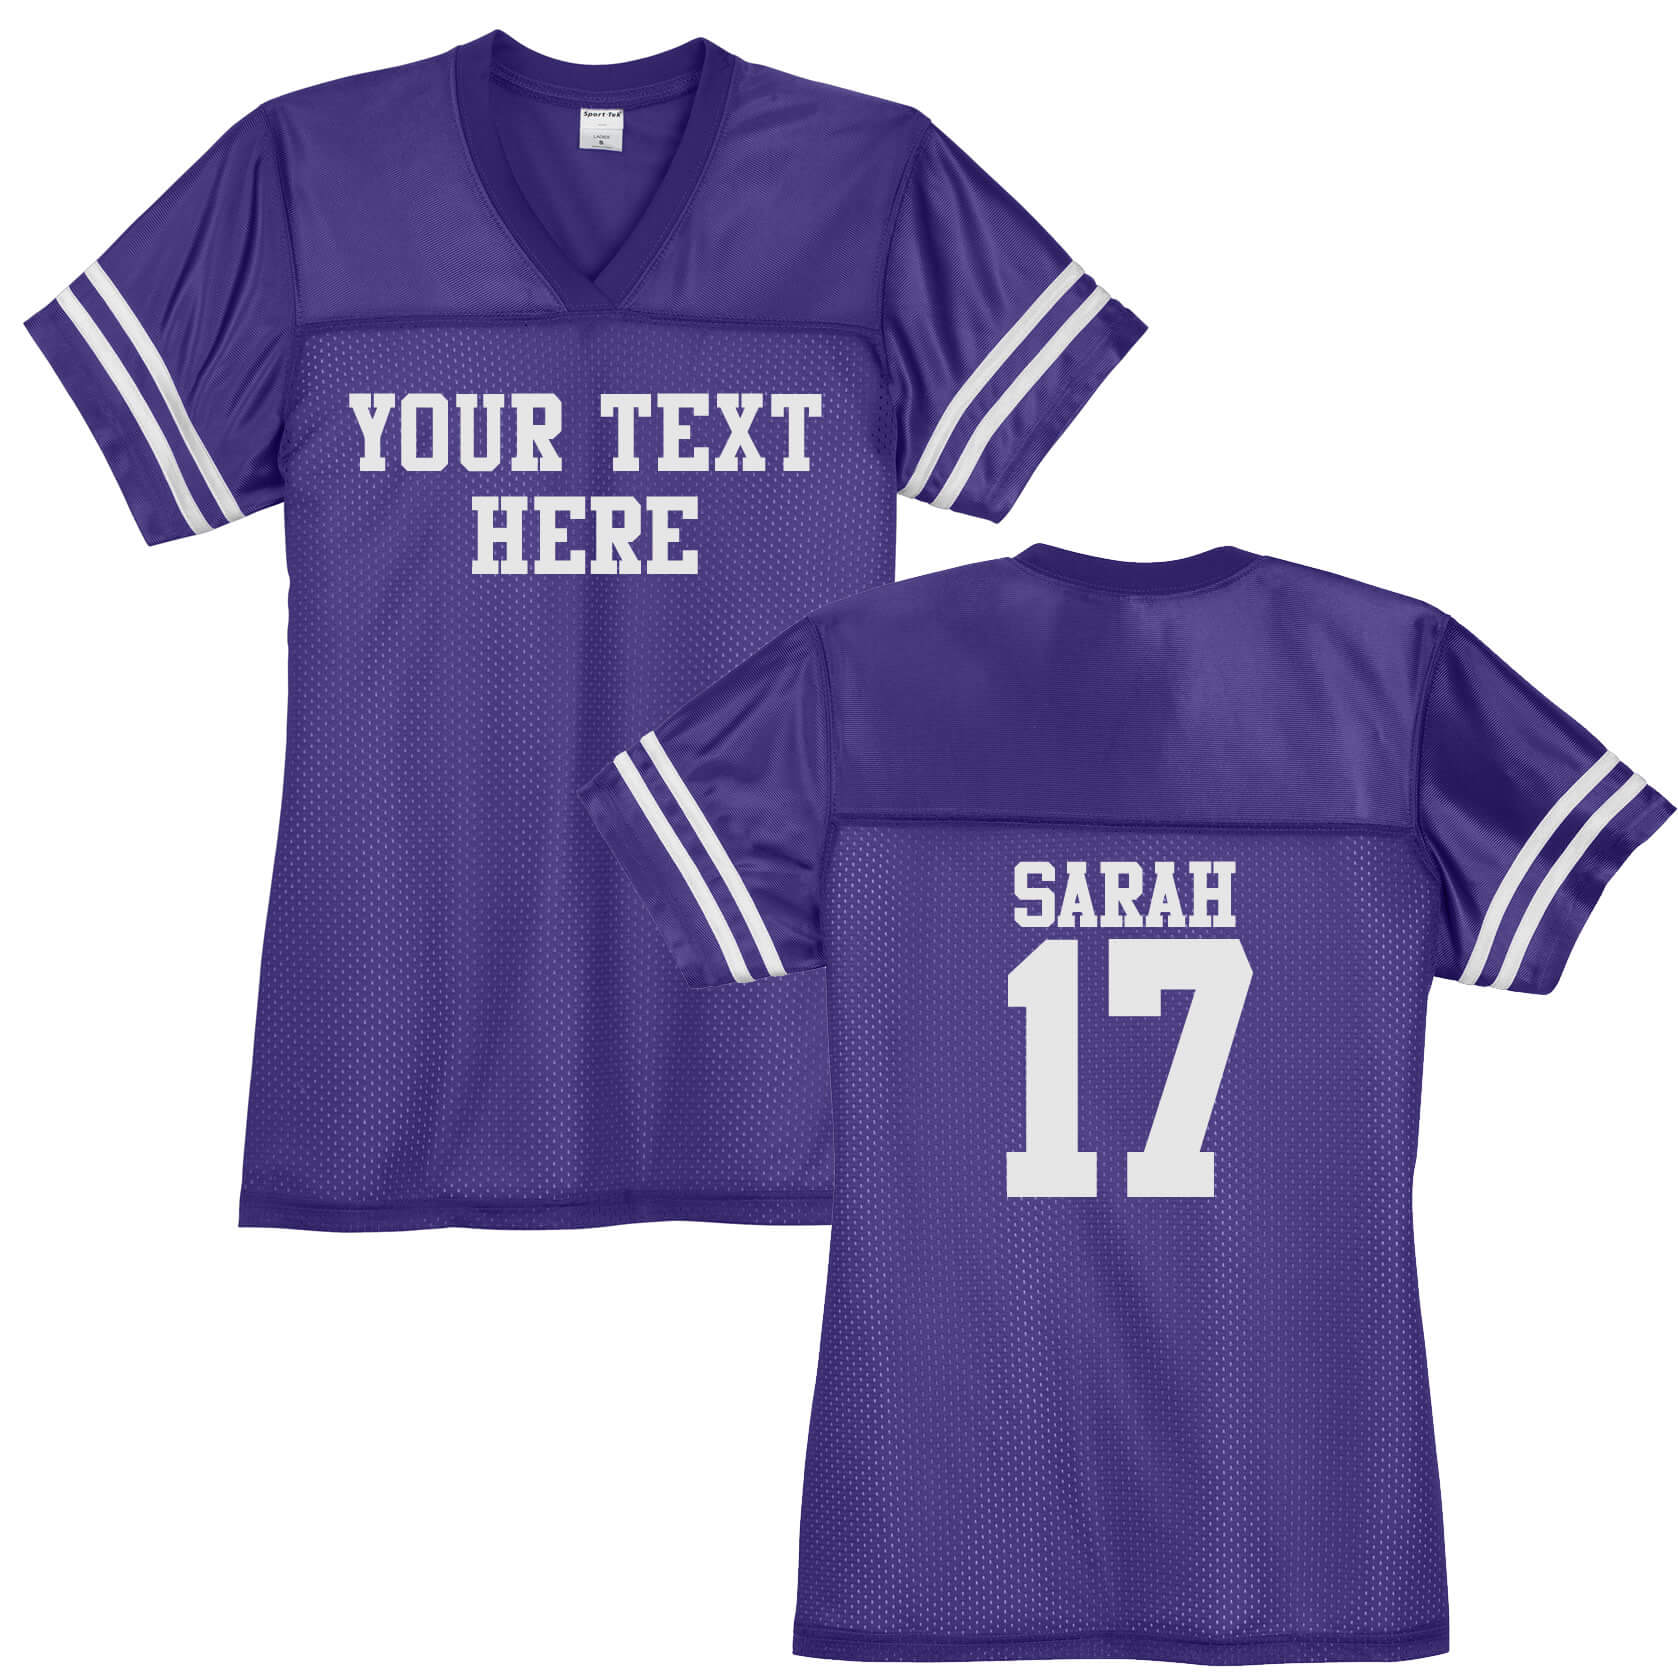 13bdbddcd Create Your Own V-Neck Football Jersey with Name & Number ...